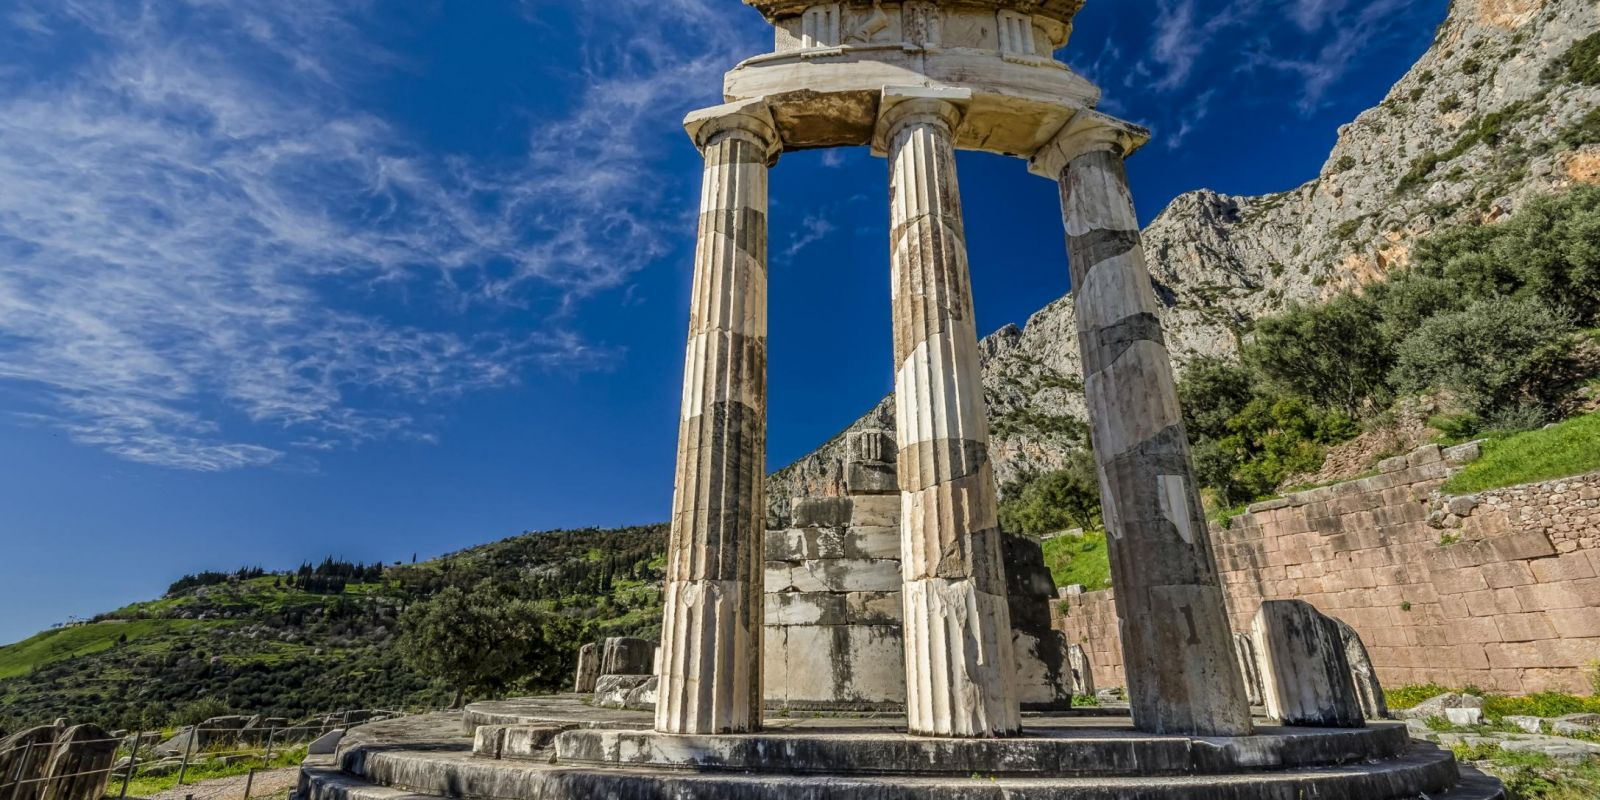 Delphi, Greece - Monterrasol small group tours to Delphi, Greece. Travel agency offers small group car tours to see Delphi in Greece. Order small group tour to Delphi with departure date on request.